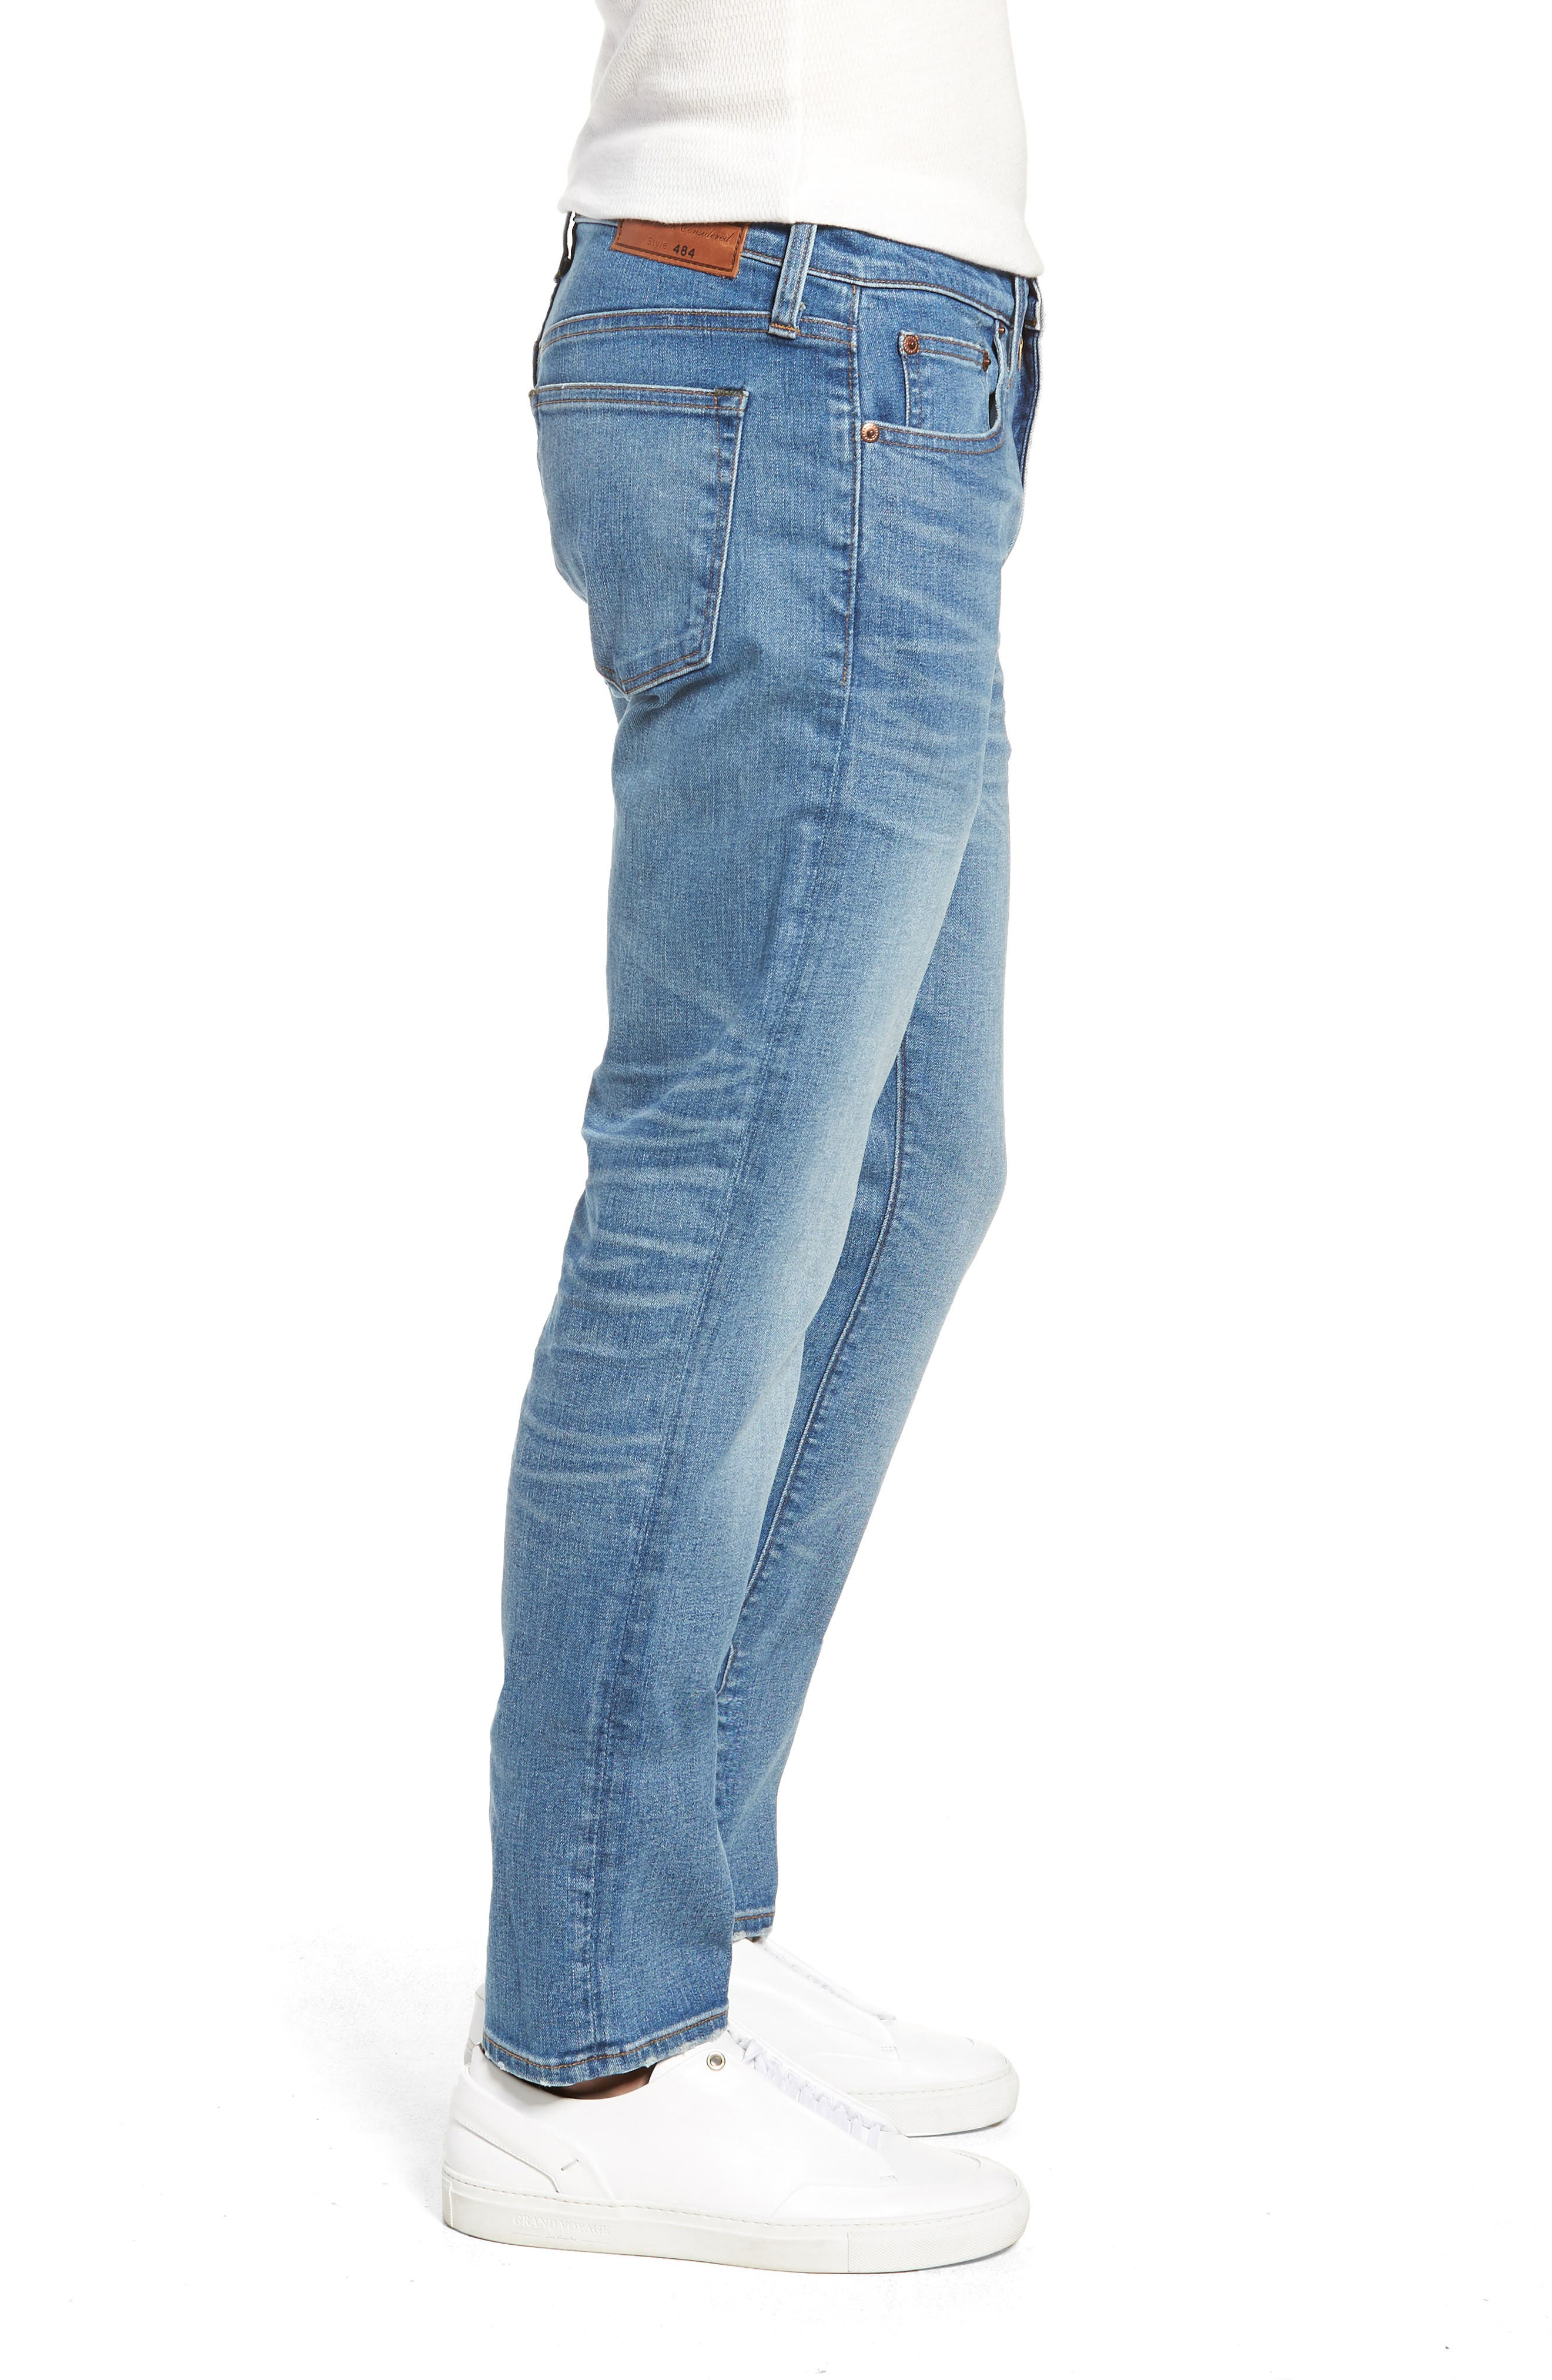 484 Slim Fit Distressed Stretch Jeans,                             Alternate thumbnail 4, color,                             Stockton Wash